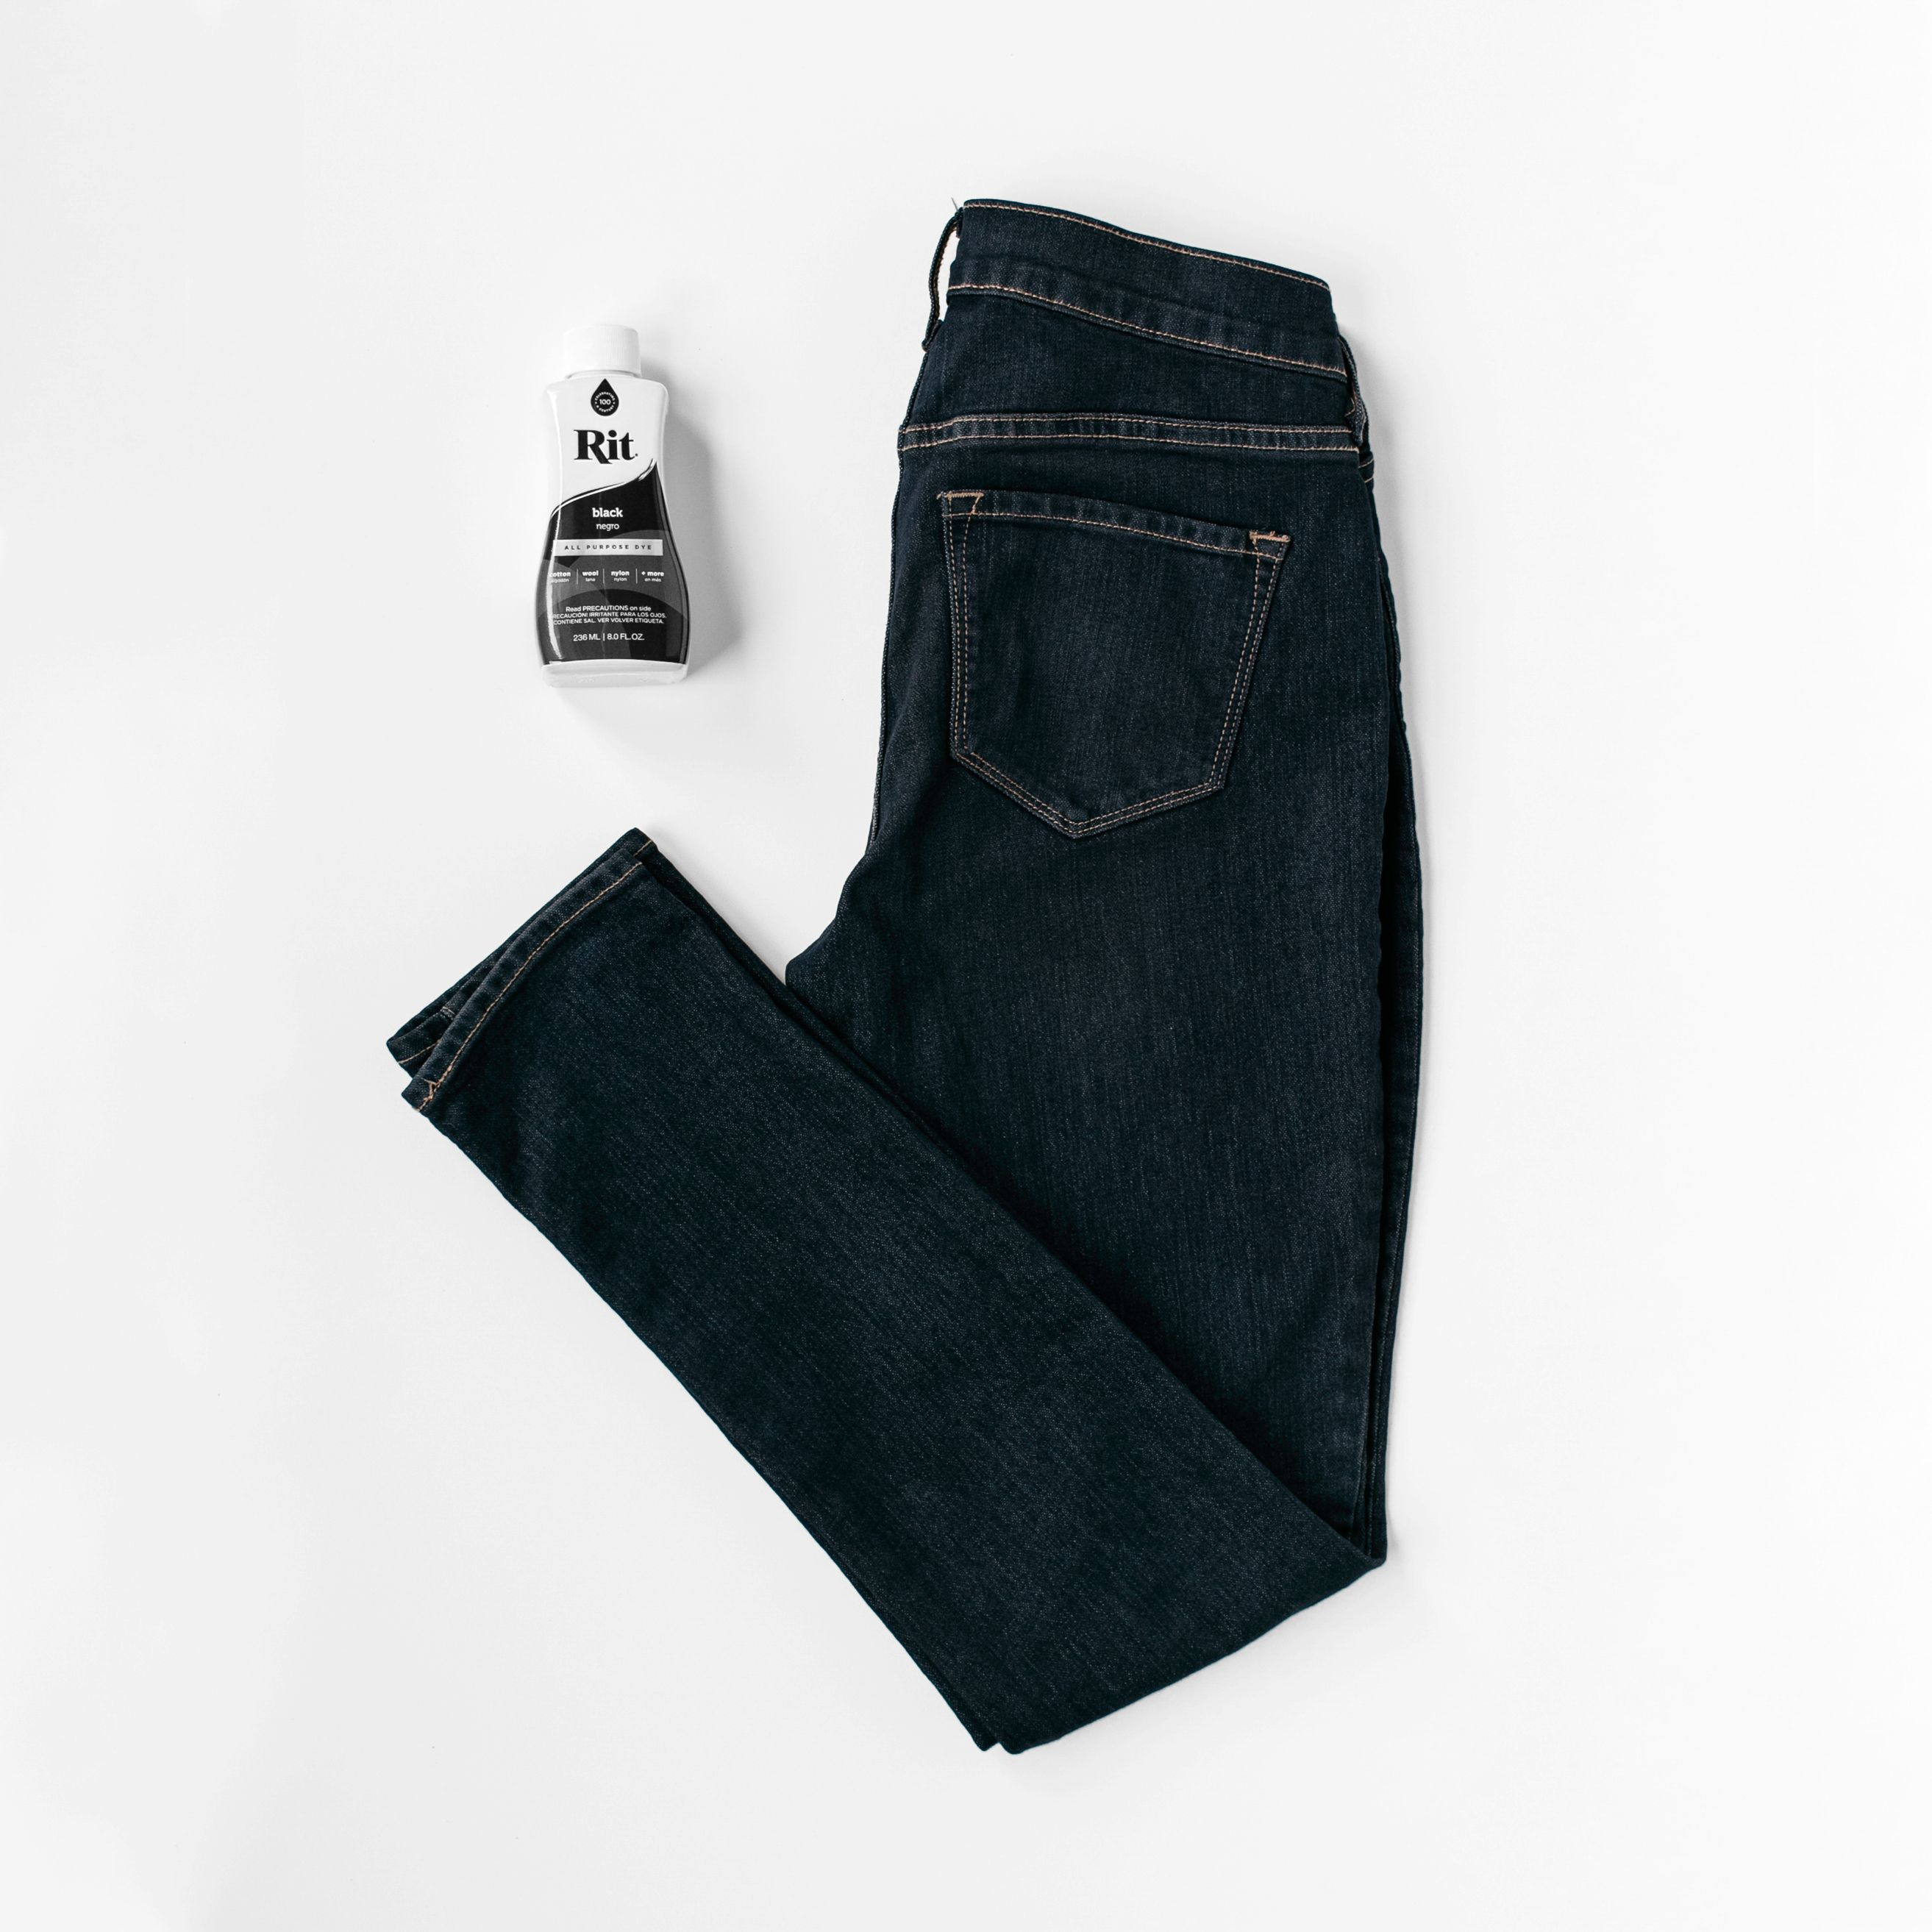 how to make black jeans darker without dye